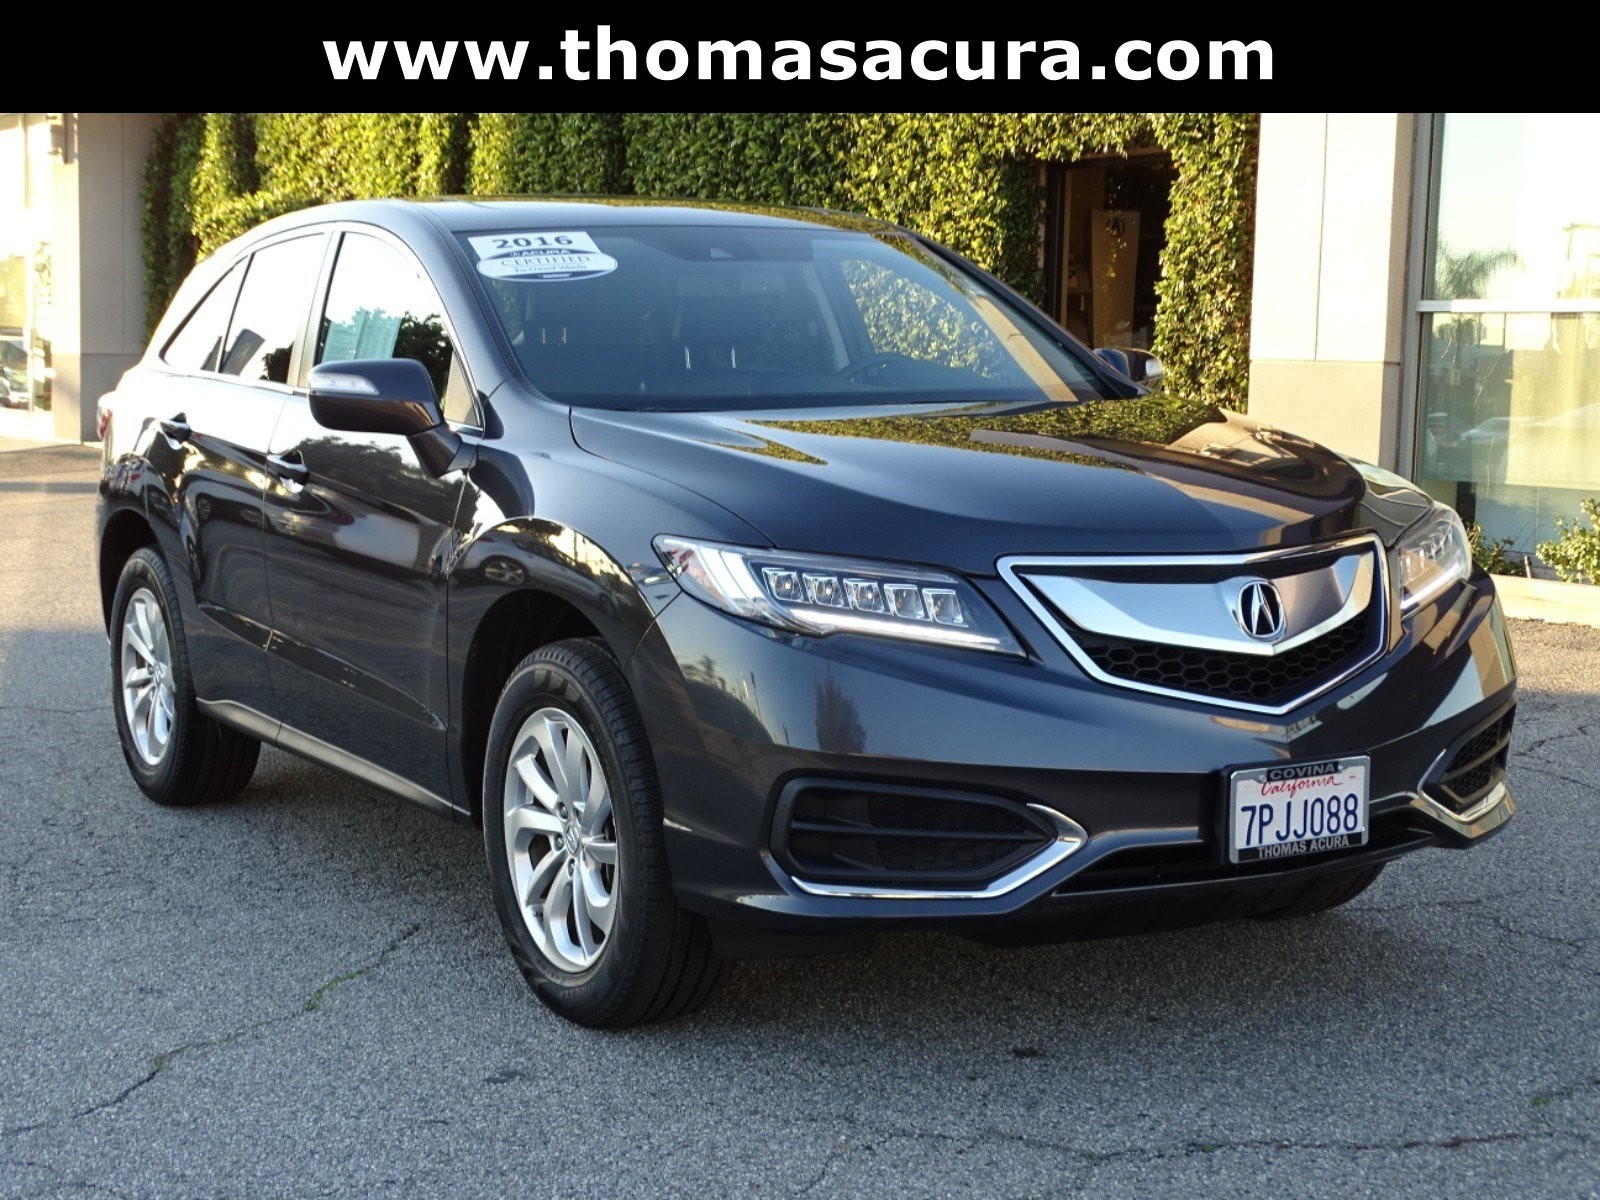 e Owner or Used RDX or Integra for Sale near Rowland Heights CA Thomas Acura